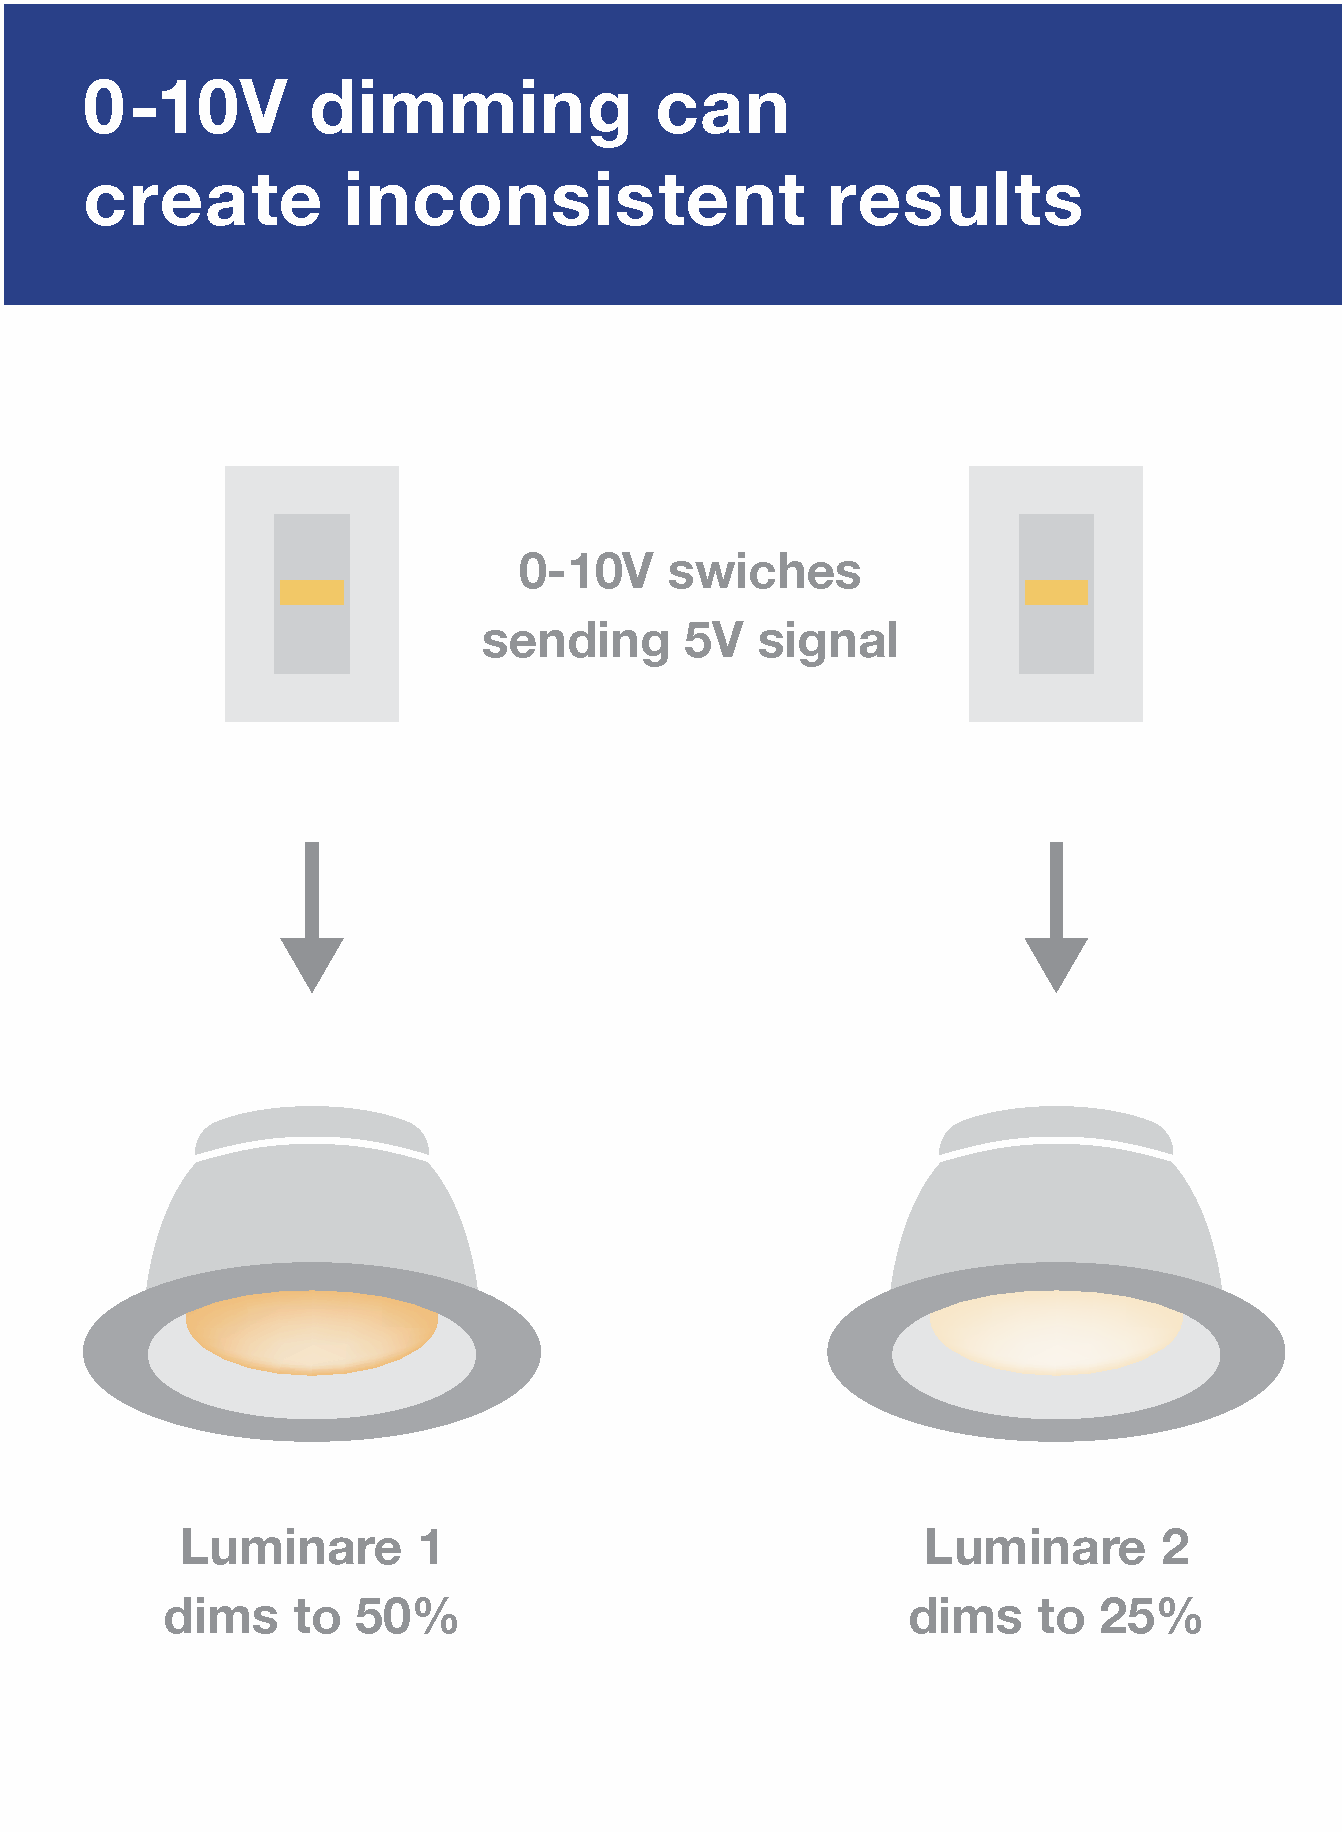 0-10V dimming signal can mean different things